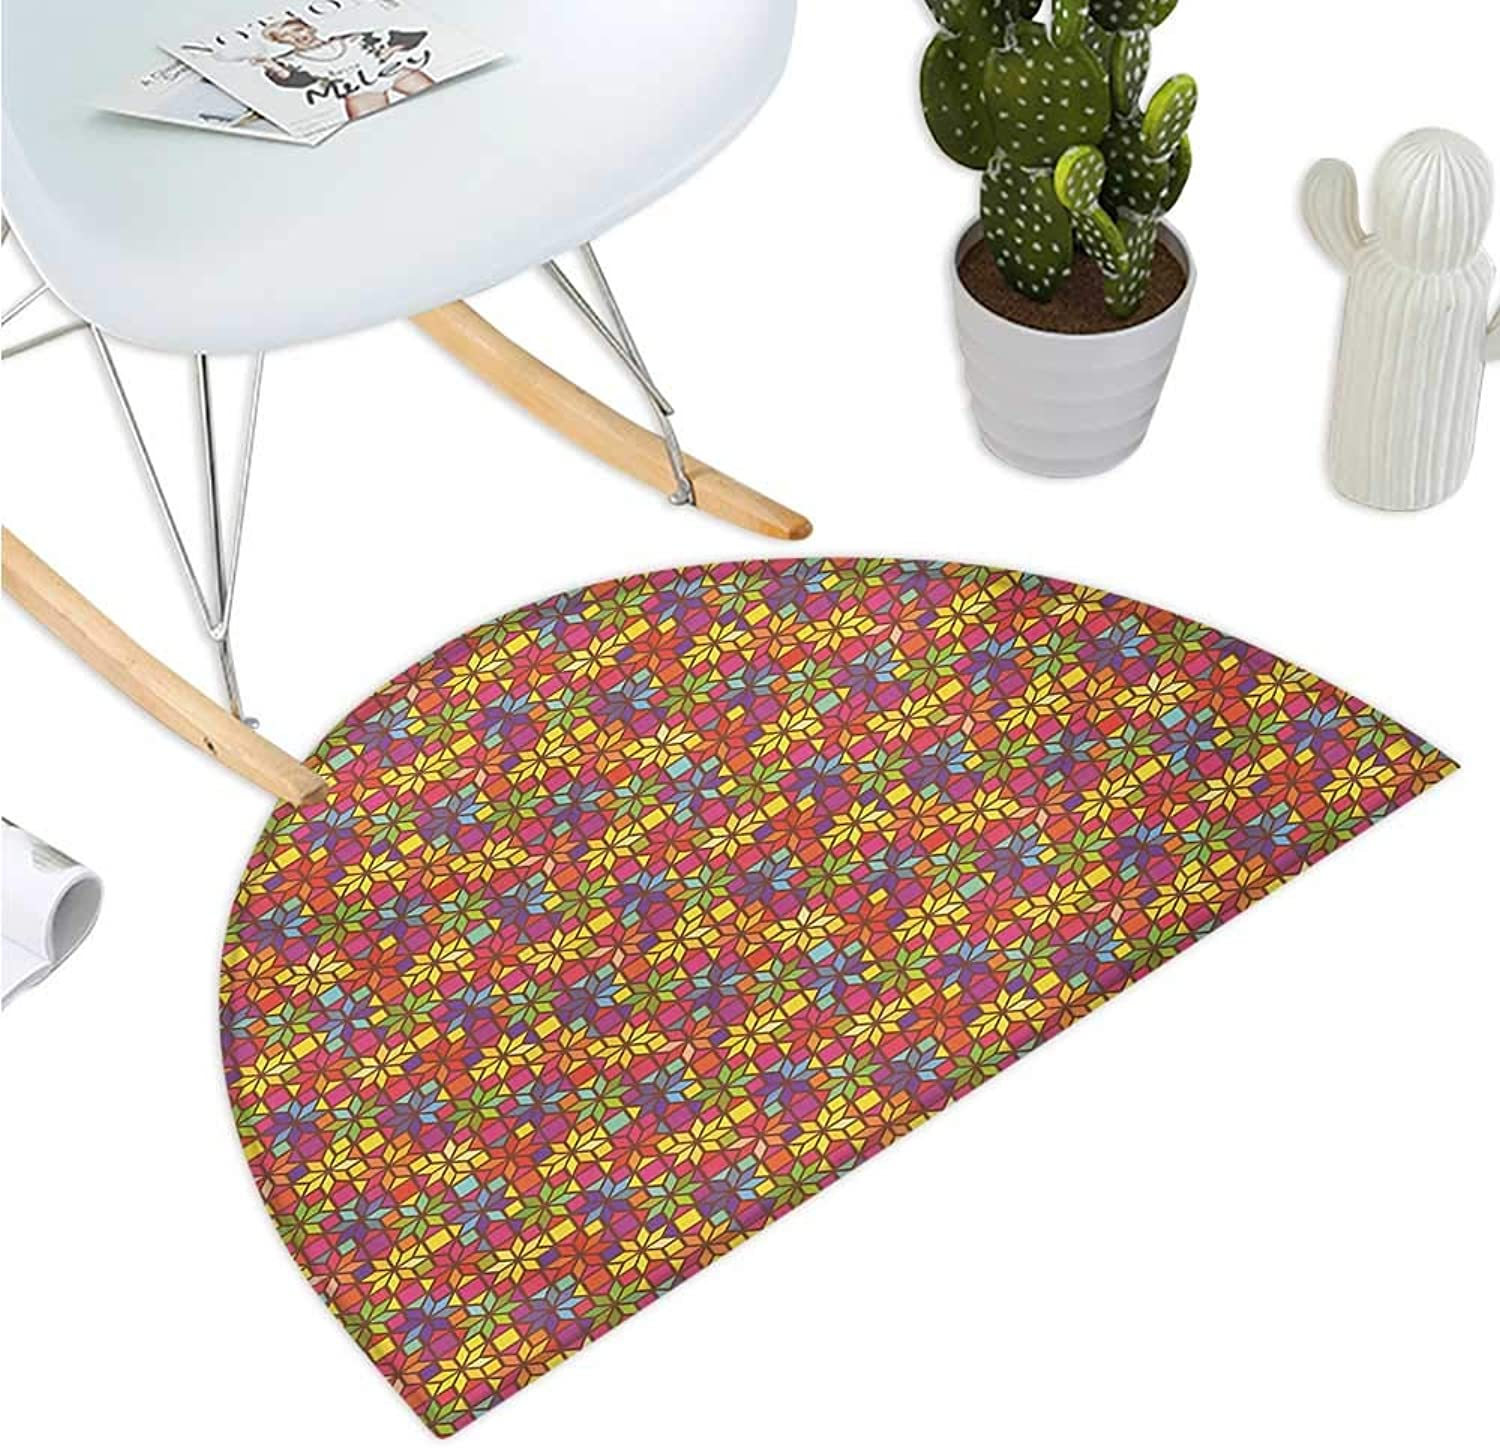 colorful Semicircular Cushion Stained Glass Style Pattern with Flower Motifs Geometrical Star Shapes Mosaic Tile Entry Door Mat H 35.4  xD 53.1  Multicolor